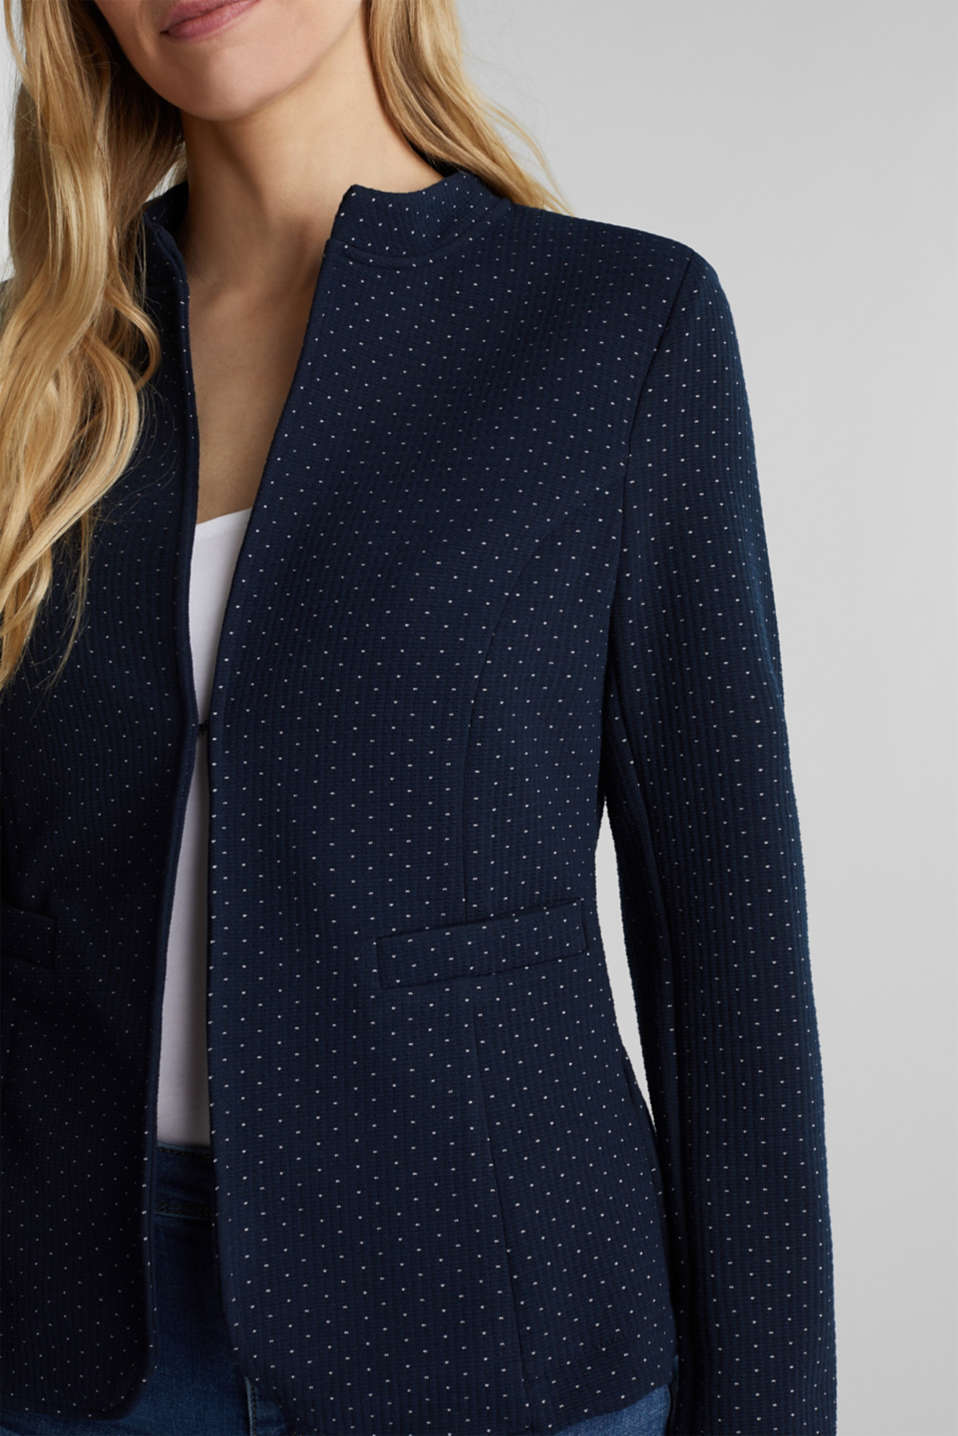 Stretch jersey blazer with jacquard polka dots, NAVY, detail image number 2